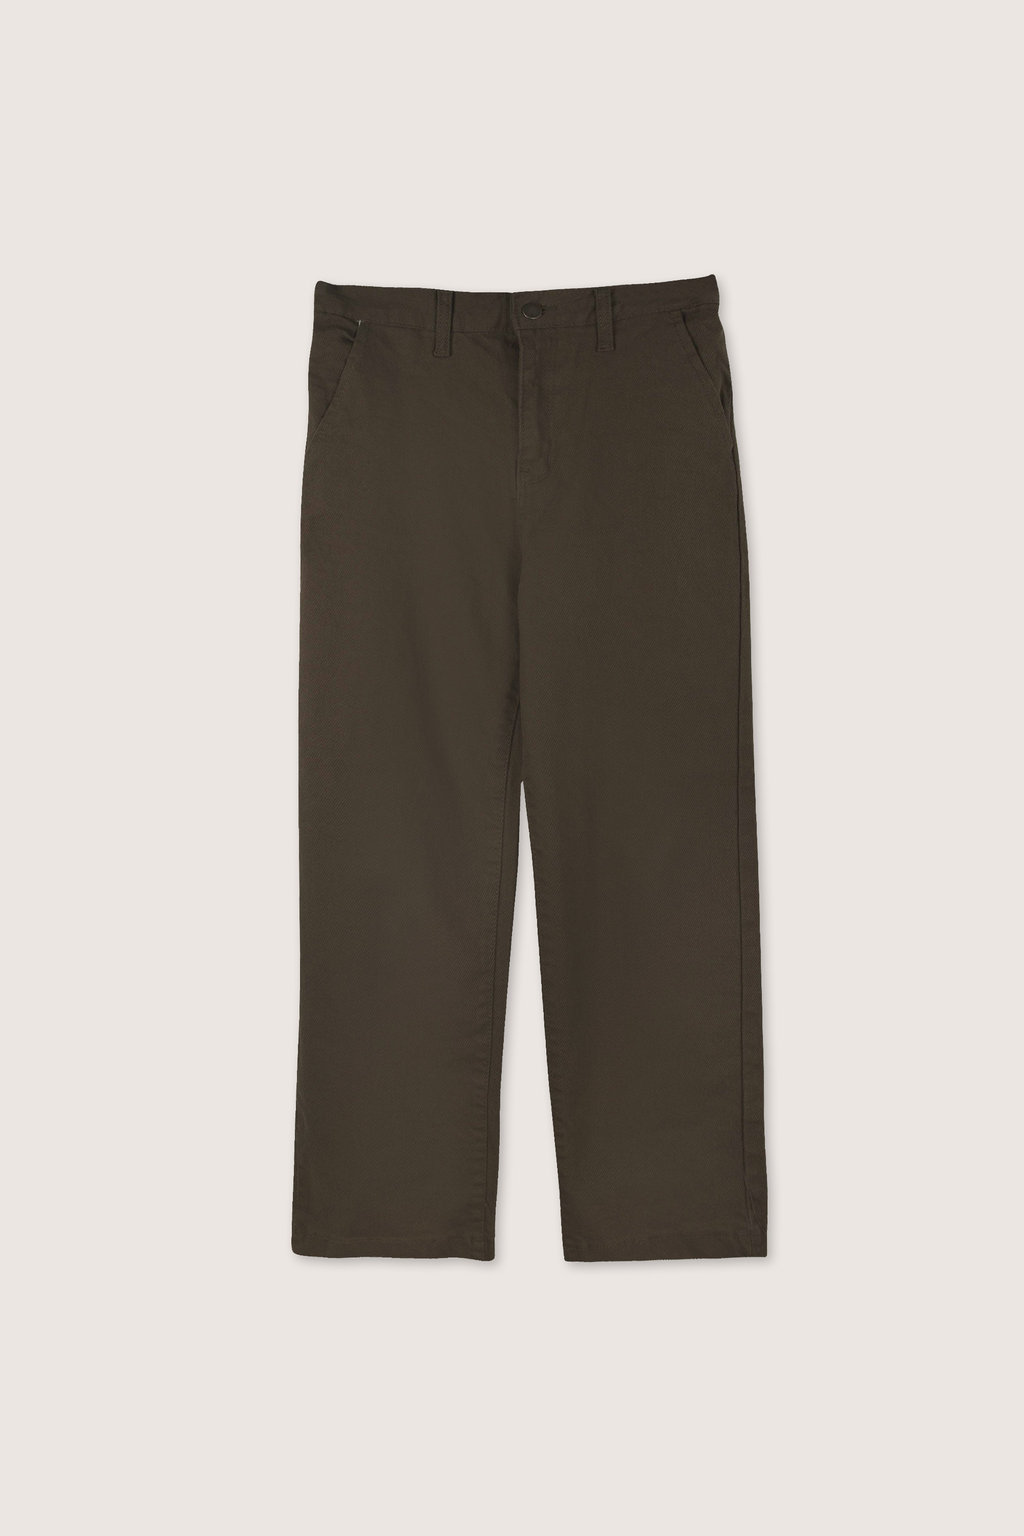 Pant H306 Olive 5